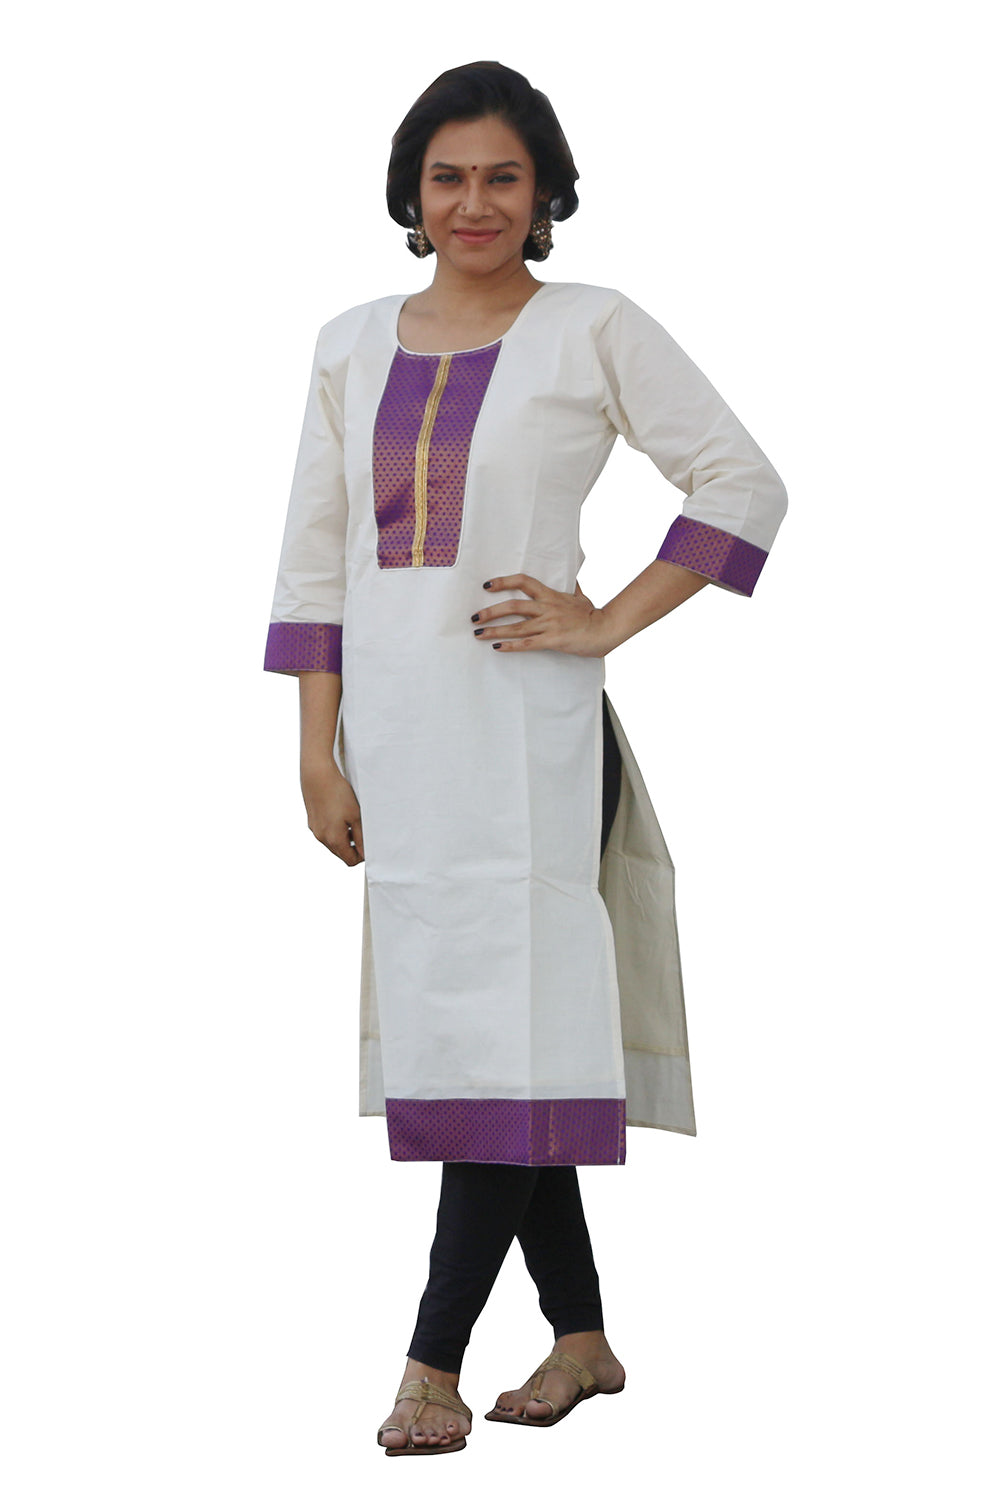 Southloom Kerala Women's Salwar / Churidar Top with Violet Design